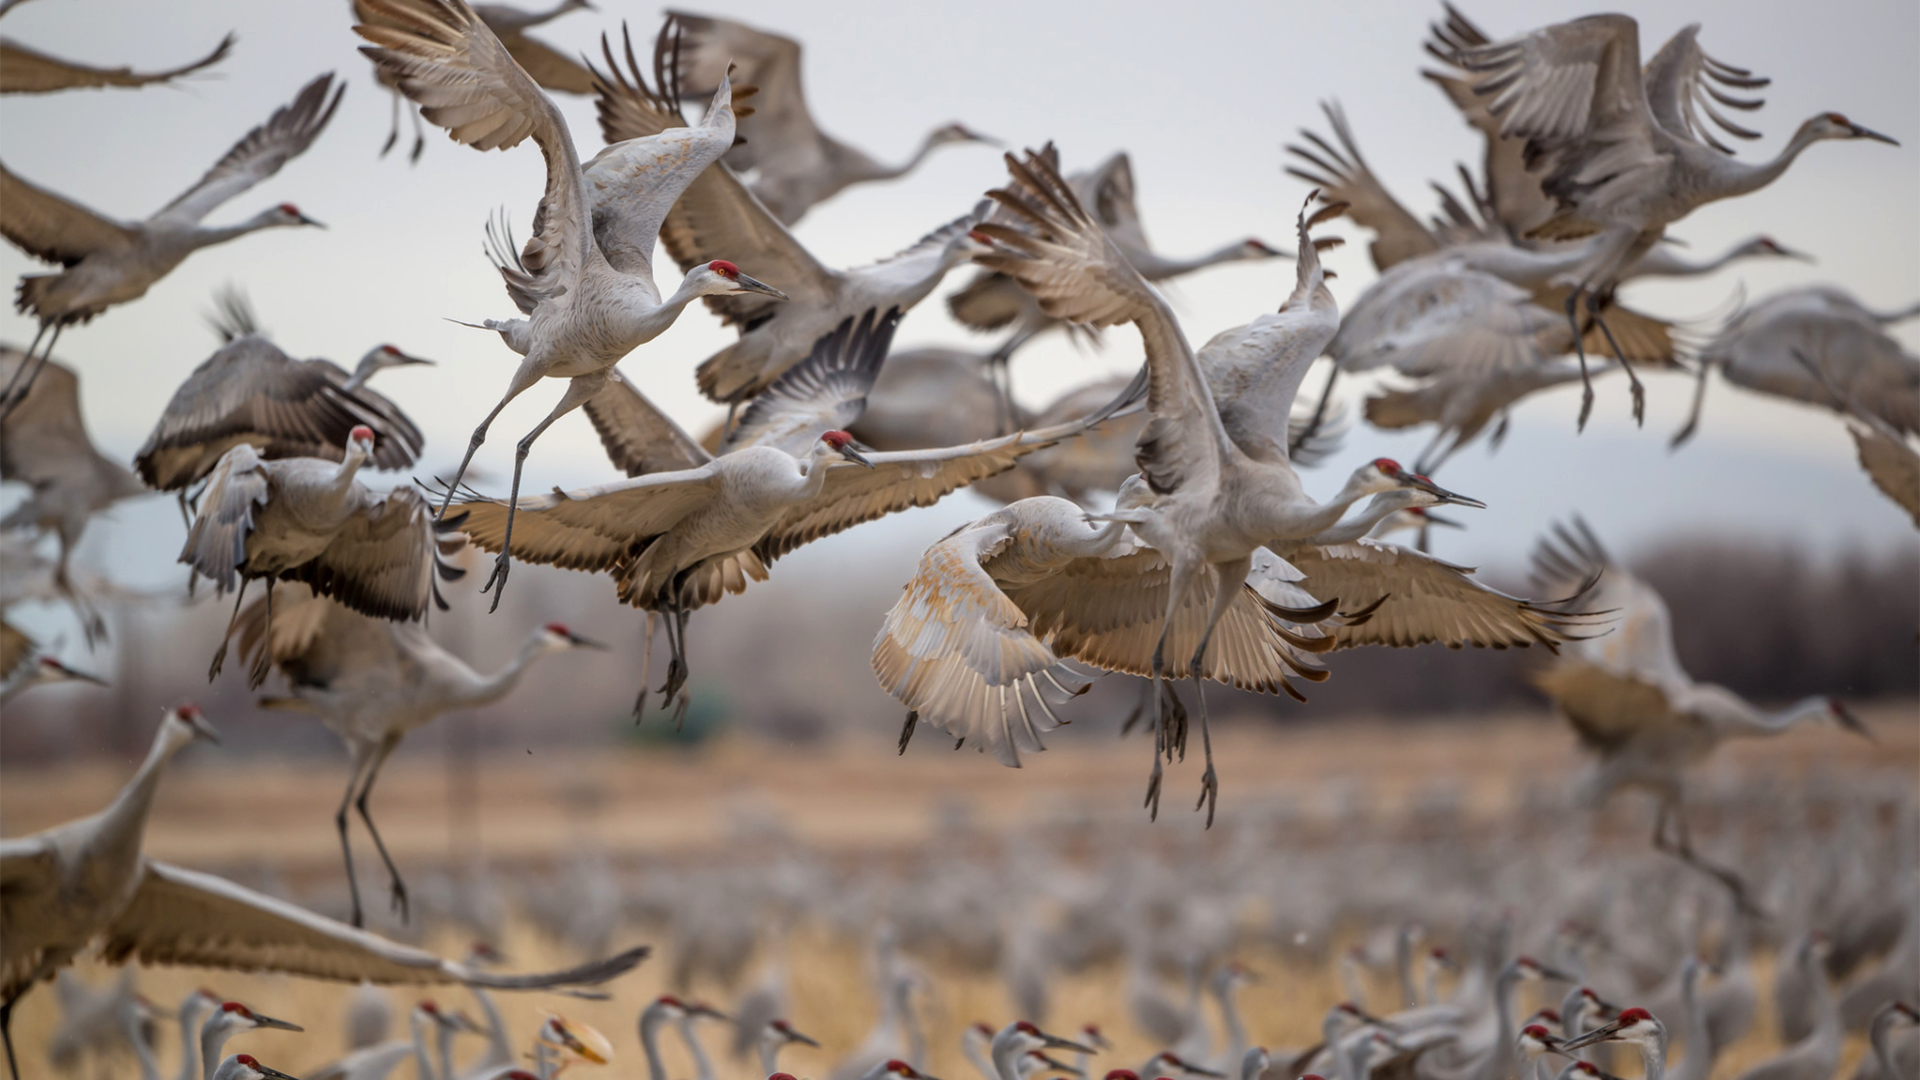 Sandhill cranes take flight from the central Platte River near Kearney. Photo by Dave Hunter